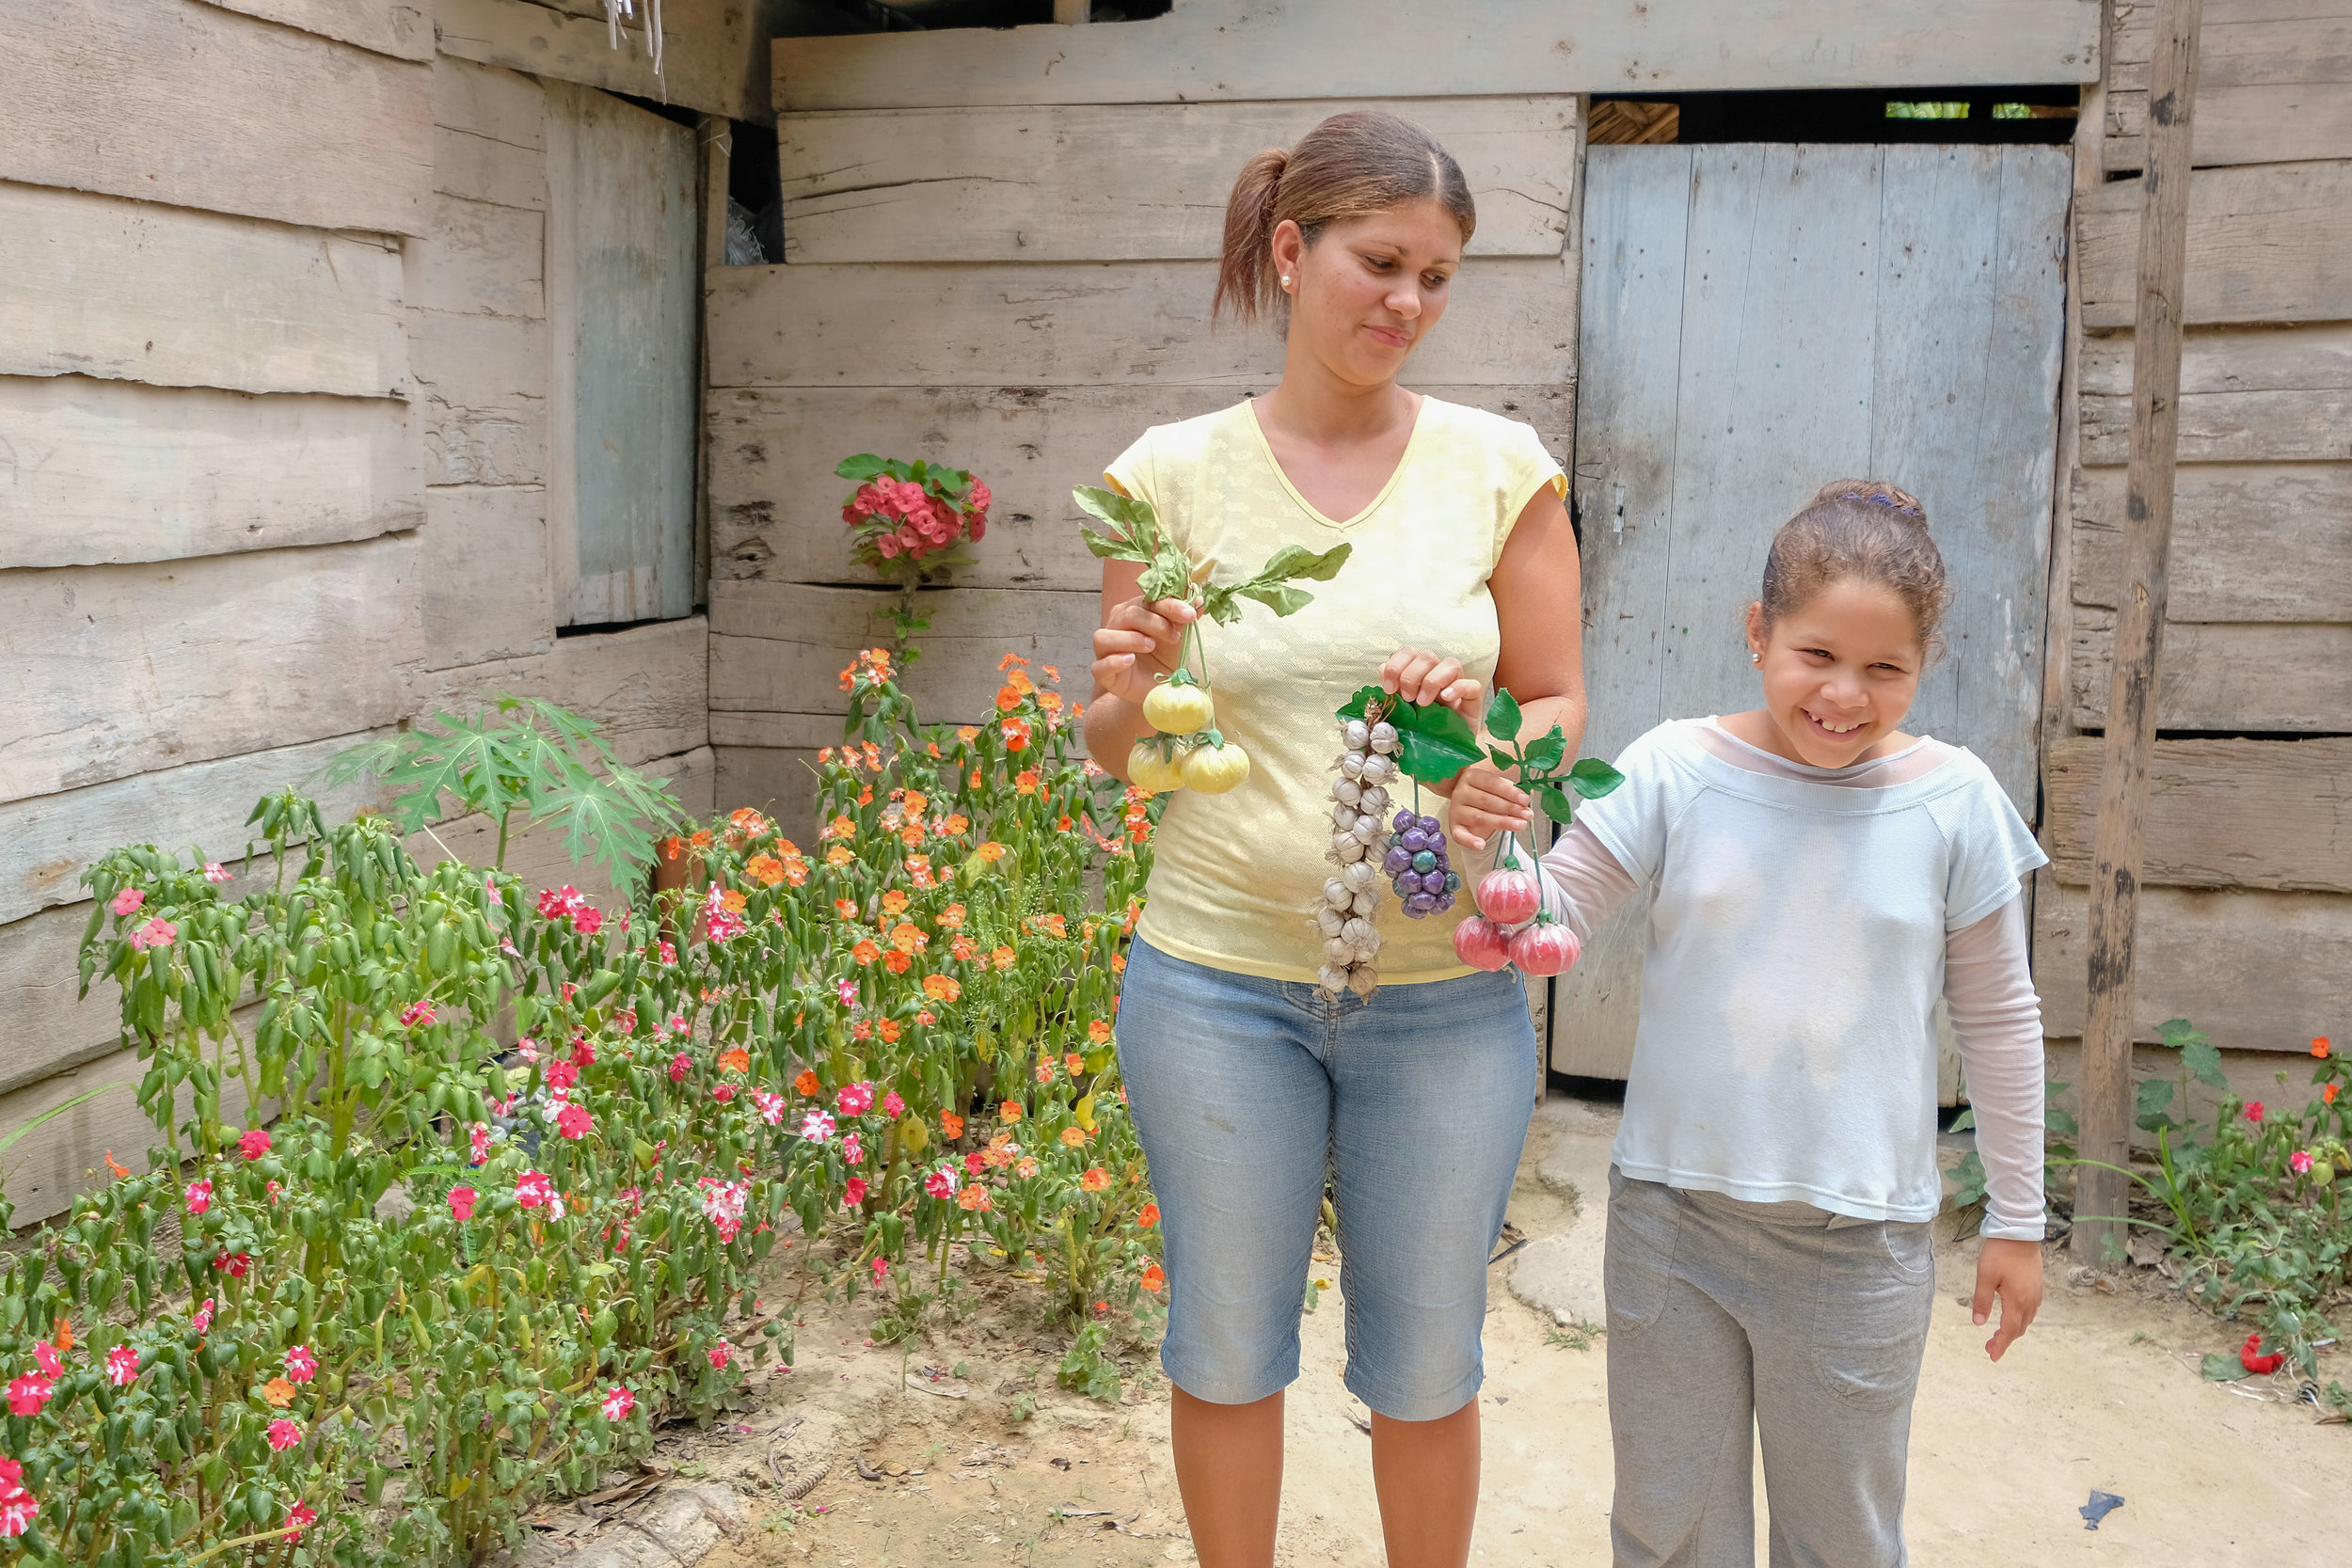 Yuneiris and Noemi posing in front of her flower garden, with recycled crafts she made.